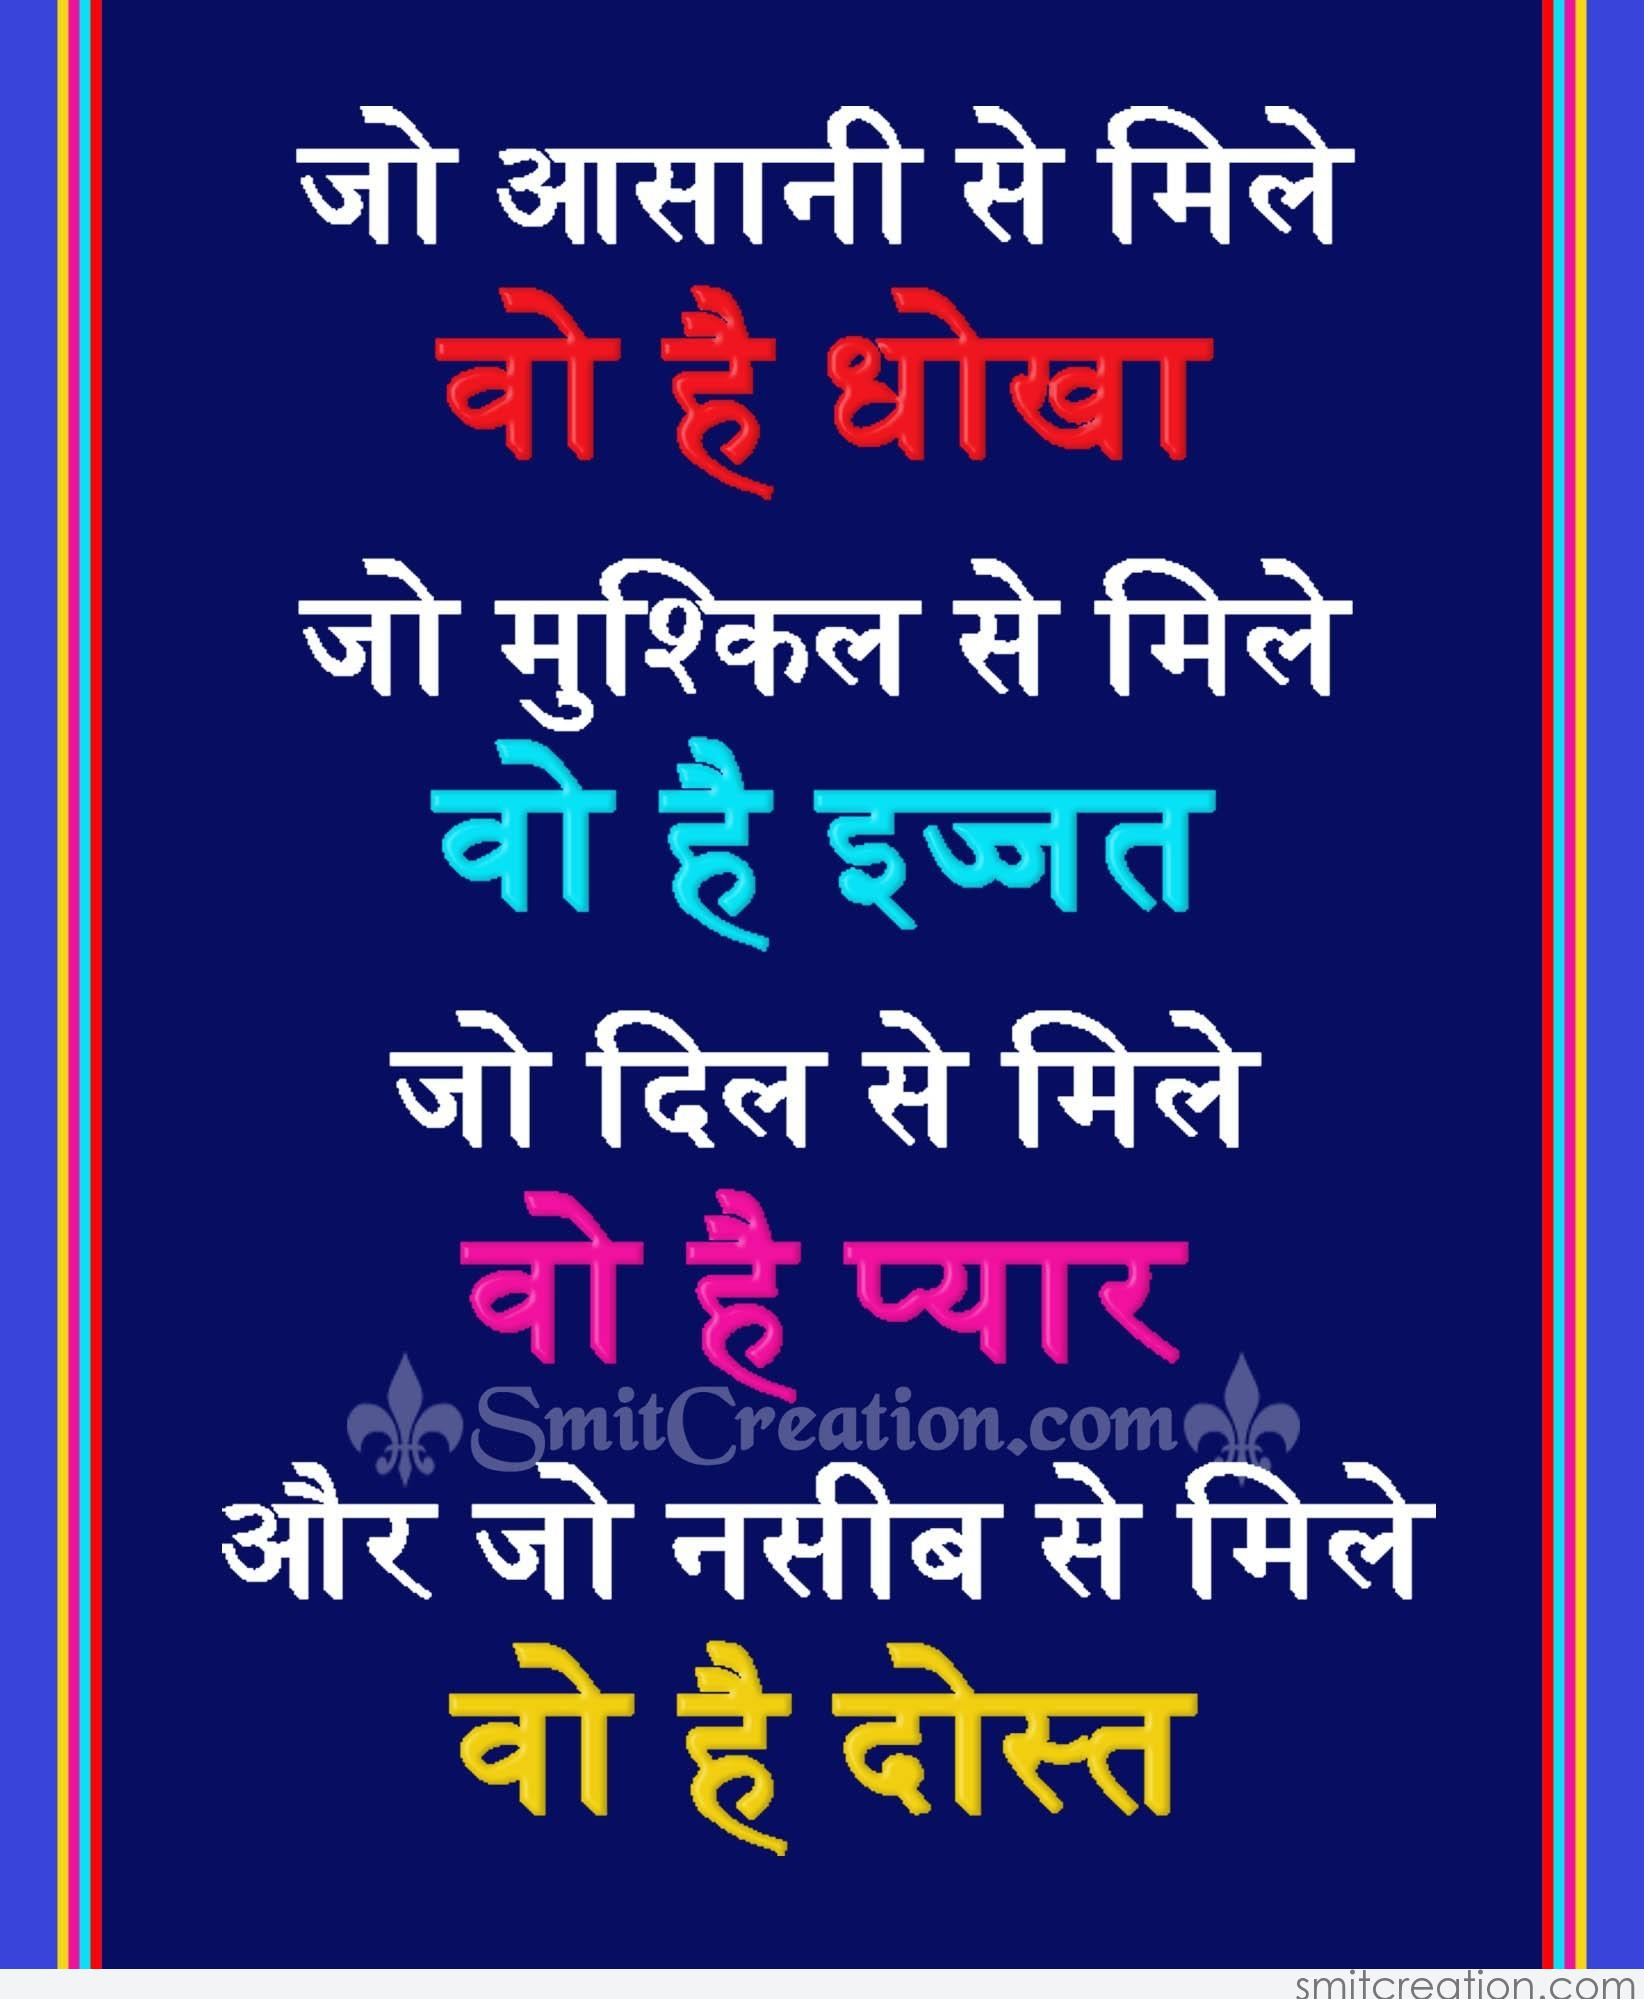 Dosti Pictures and Graphics - SmitCreation com - Page 4